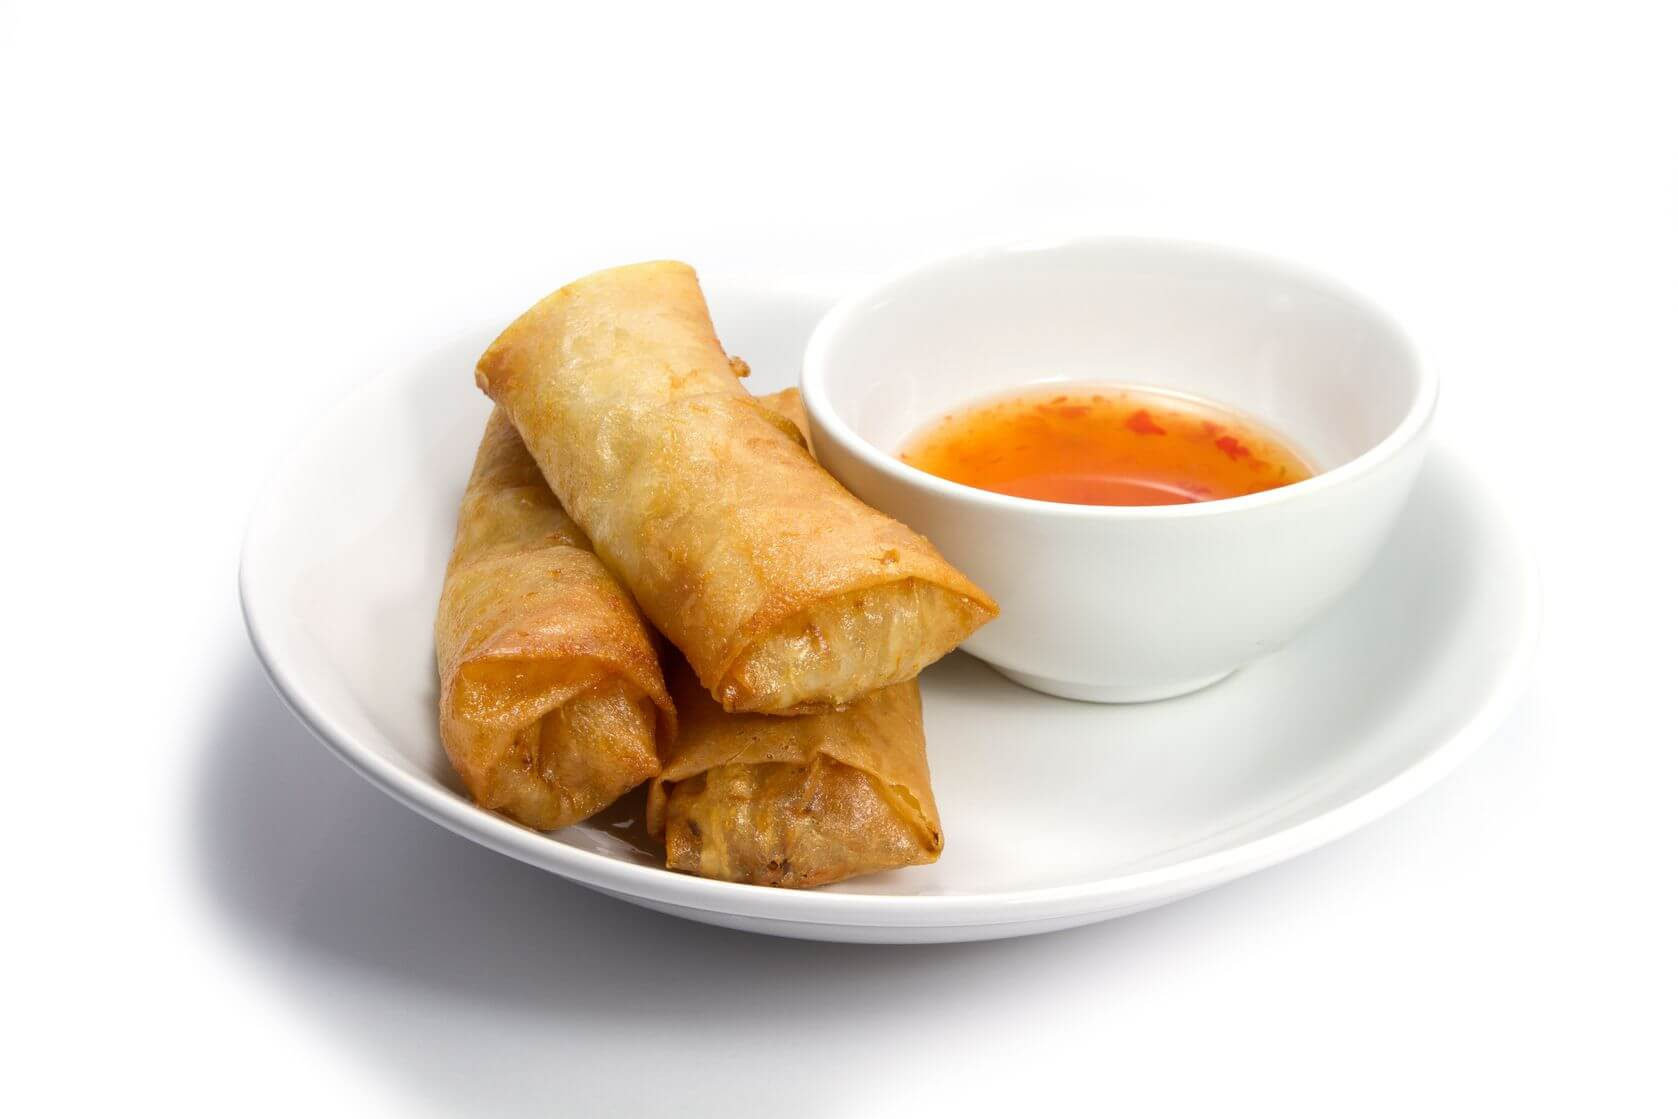 Asian sauces such as sweet and sour are sugary foods that can make you fat